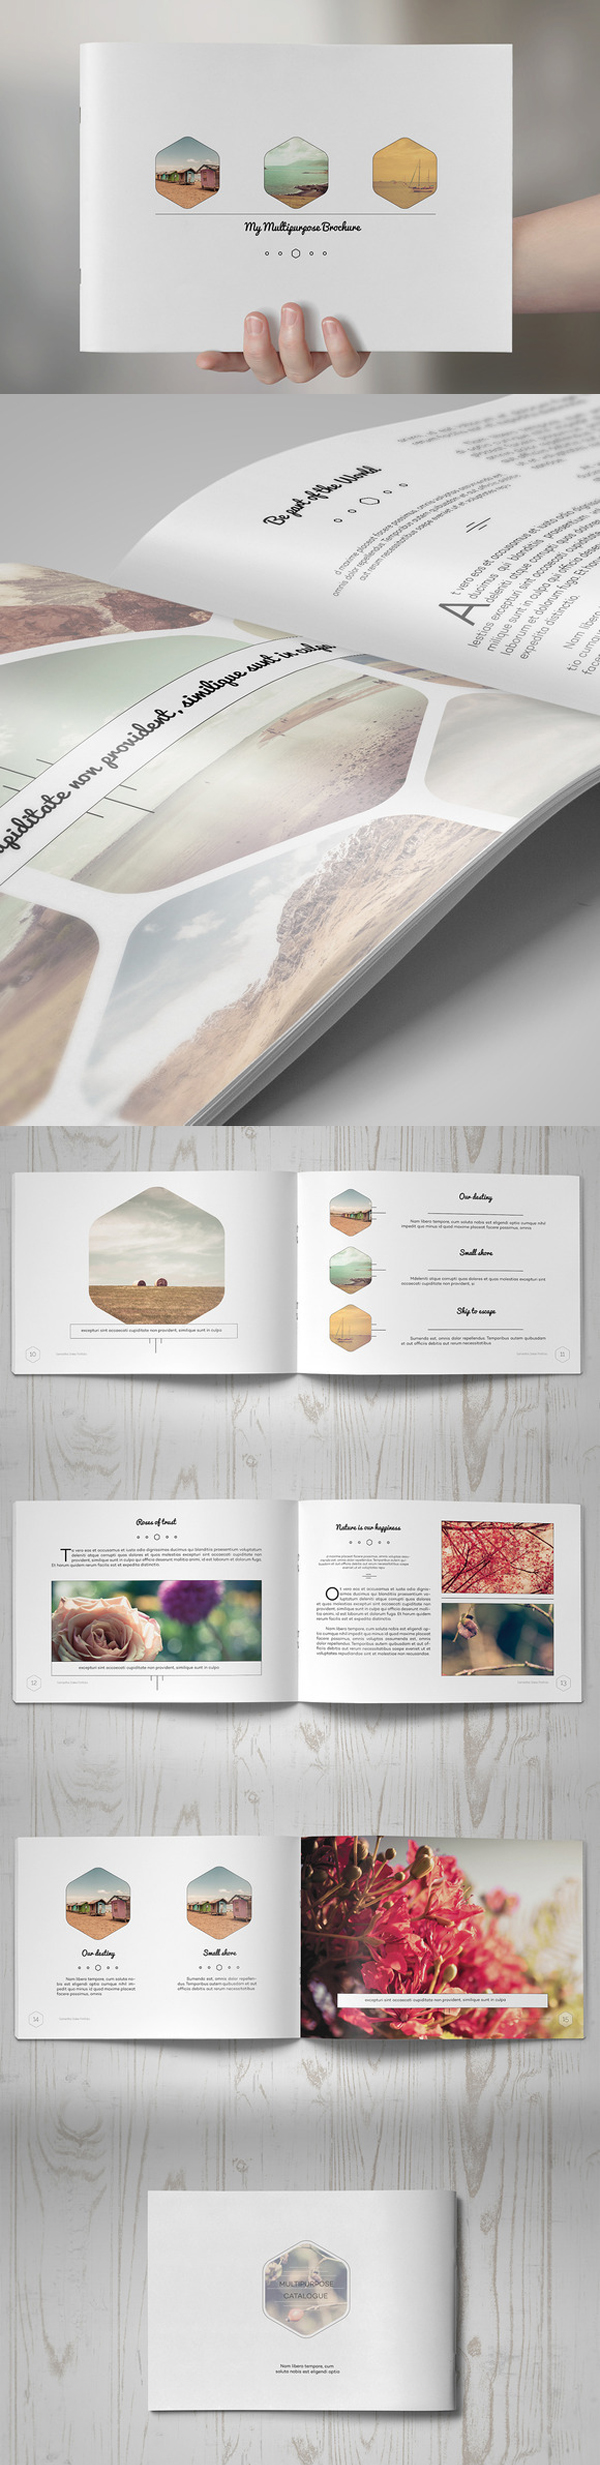 Multipurpose Clean Brochure Free Download